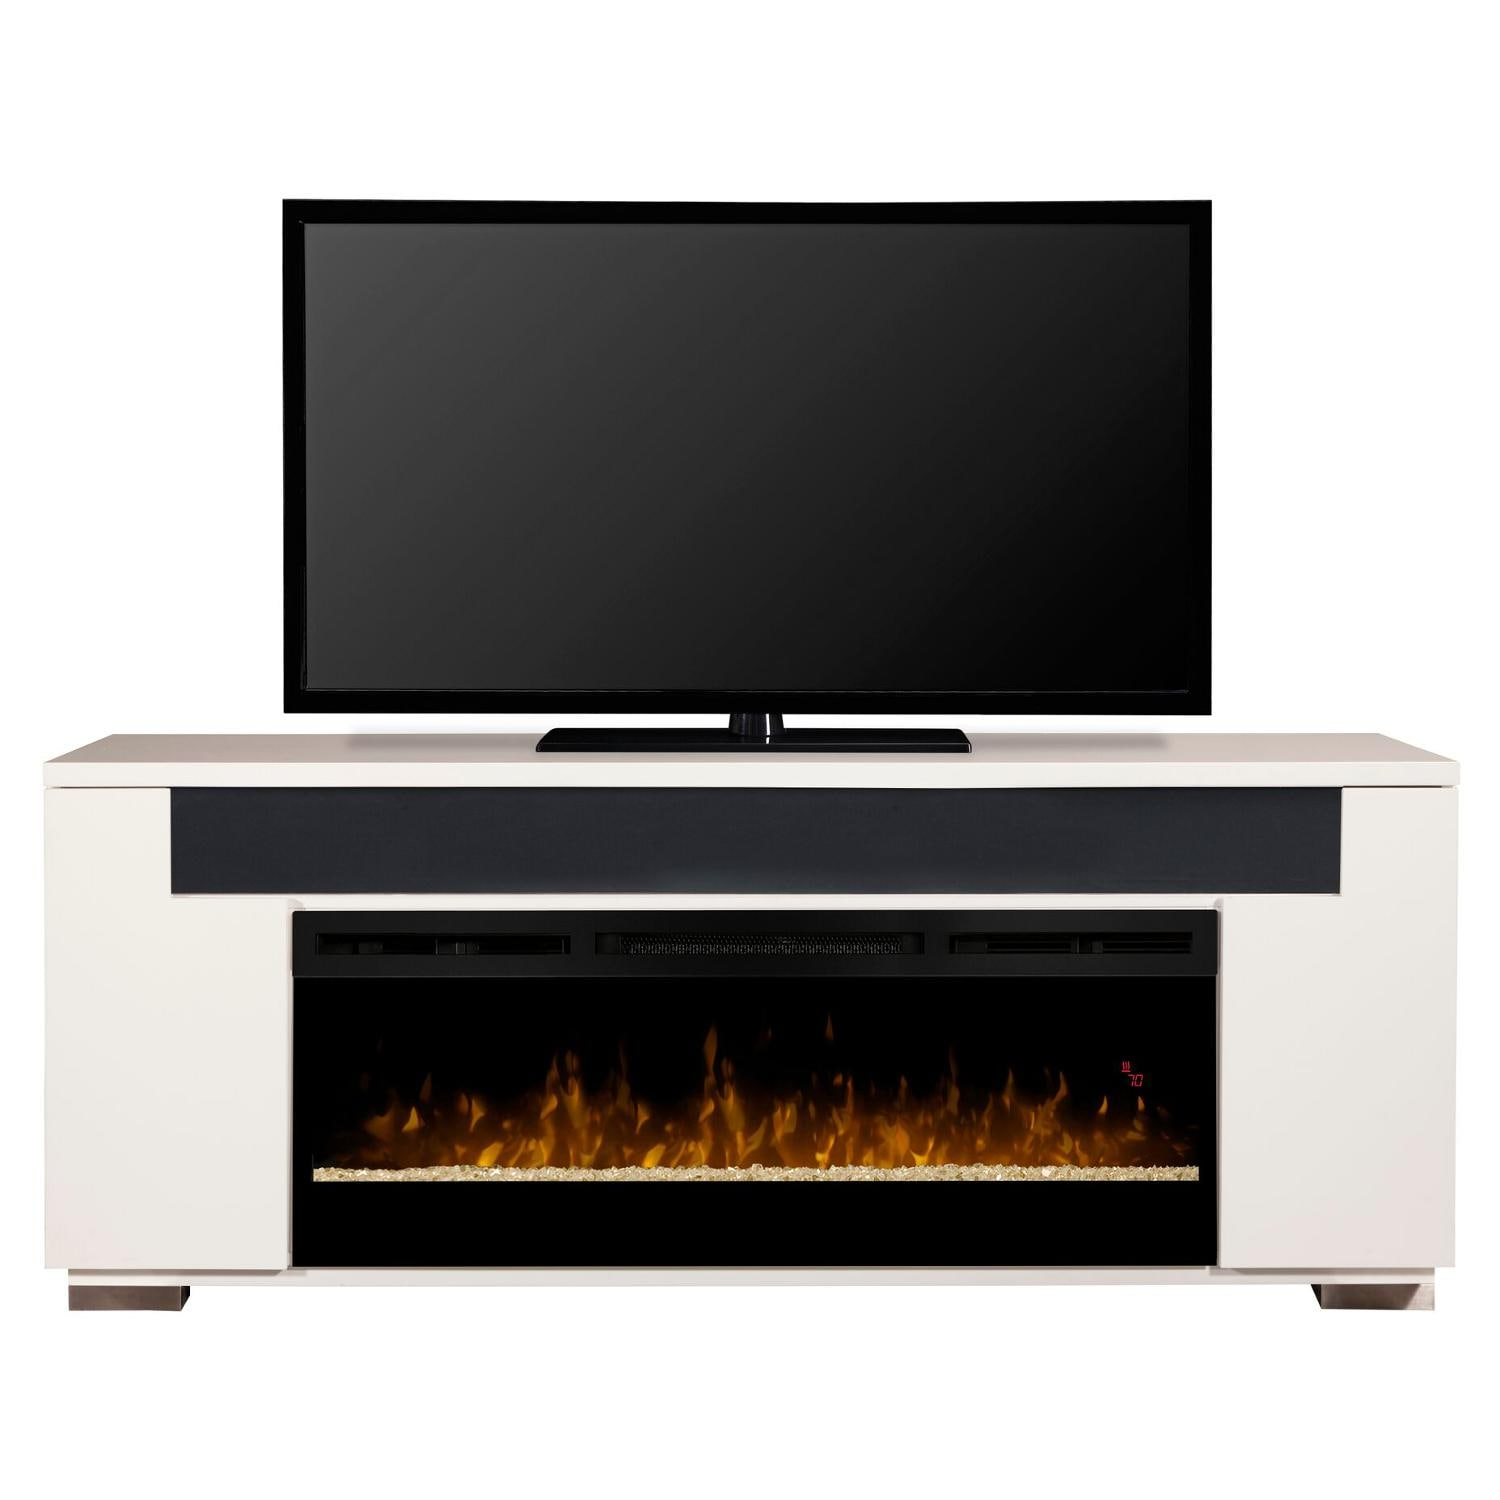 Dimplex Haley 76 Inch Electric Fireplace A Console Acrylic Ice Embers White Gds50g3 1671w Gas Log Guys